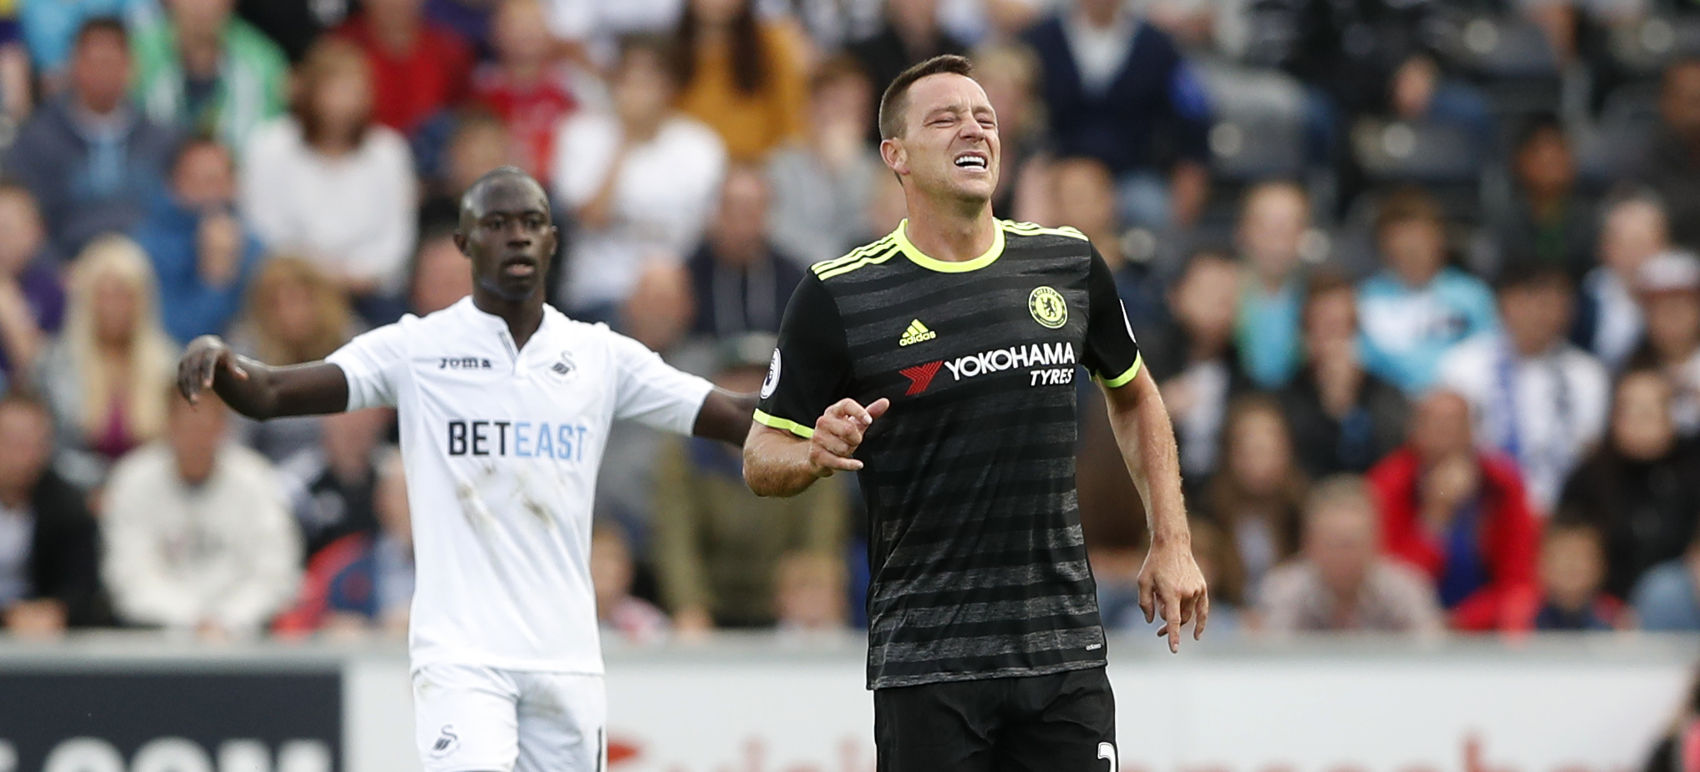 → John Terry made the FPL Dream Team for the final time, finishing on 177 points. How many times did he feature in this end-of-season XI over his career (no defender made more appearances than the Chelsea stopper)?